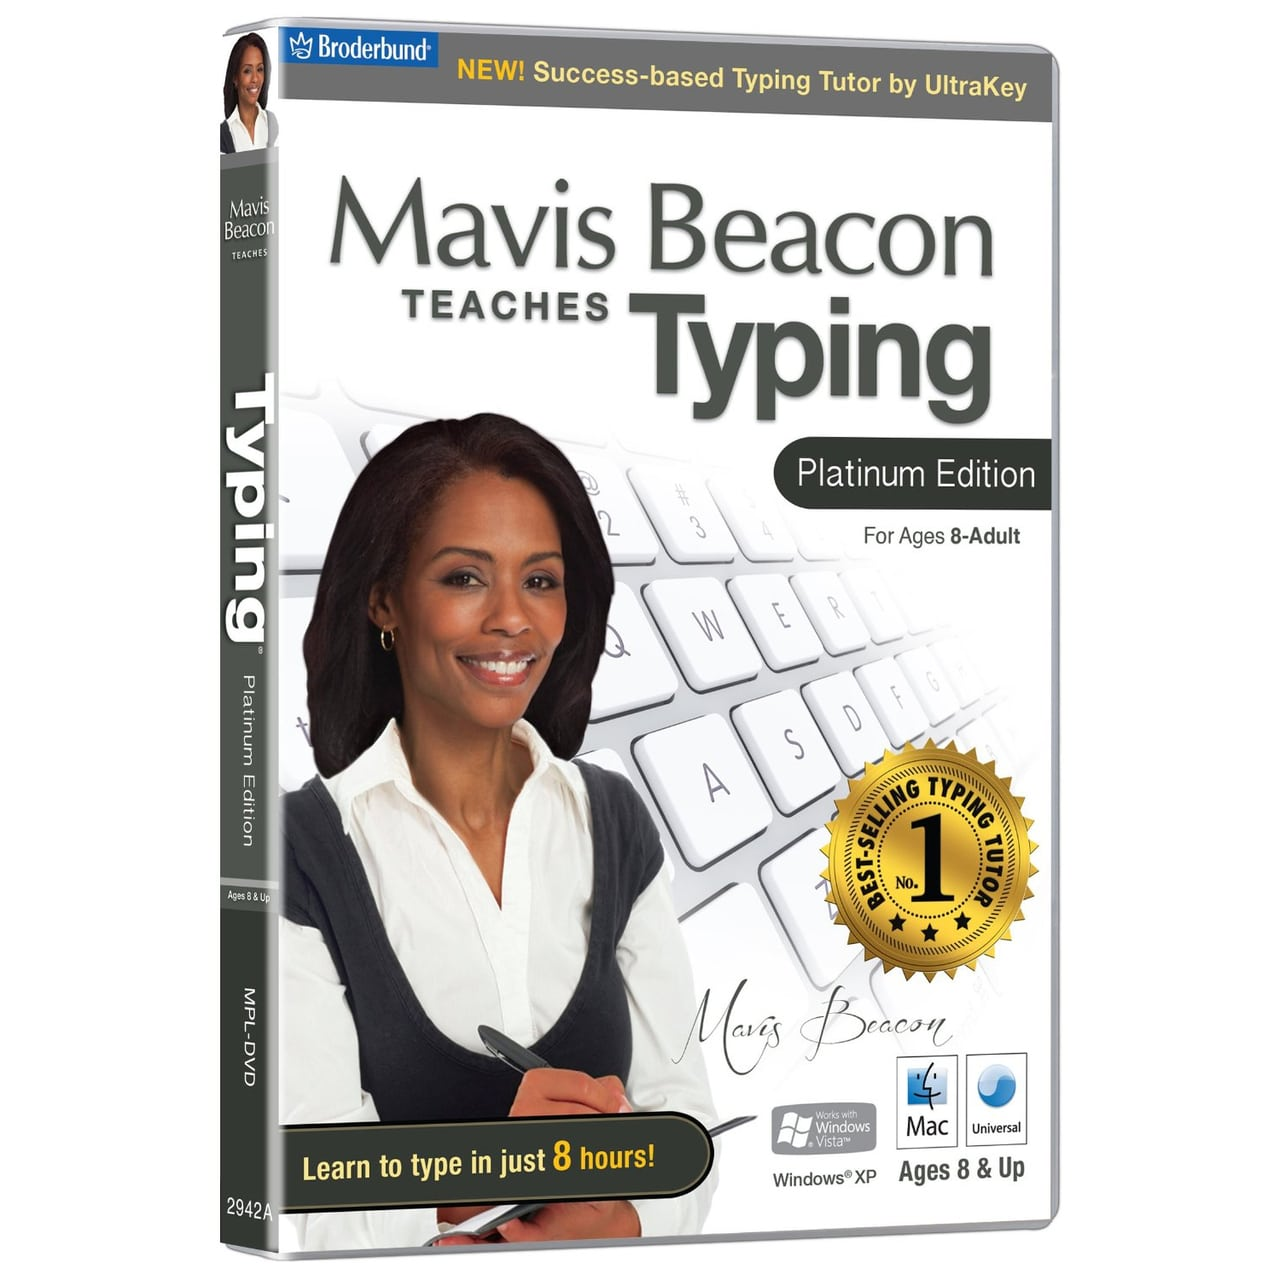 mavis beacon typing software for mac